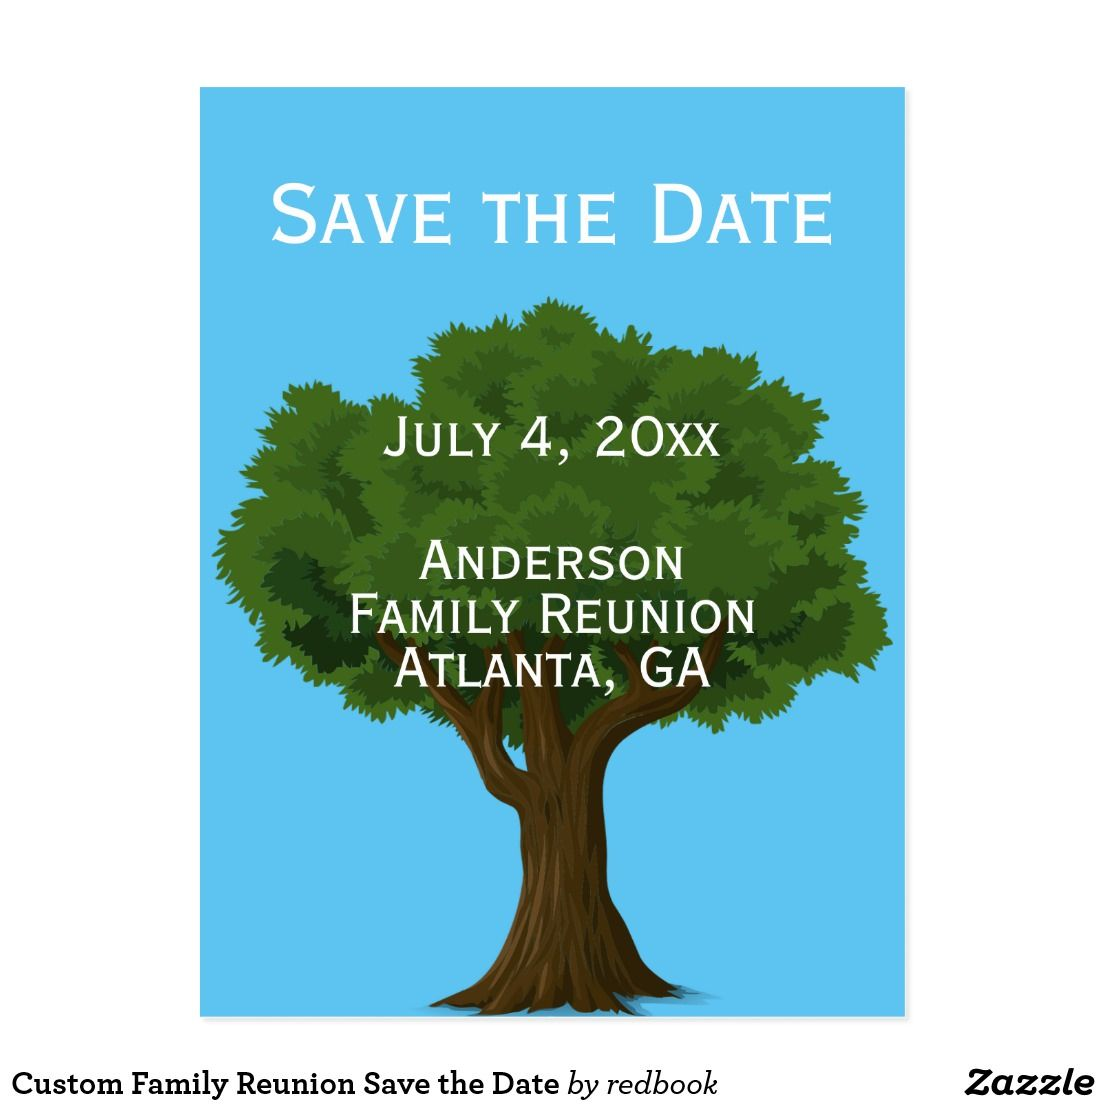 b6a4d40c2 Custom Family Reunion Save the Date Announcement Postcard | Zazzle ...